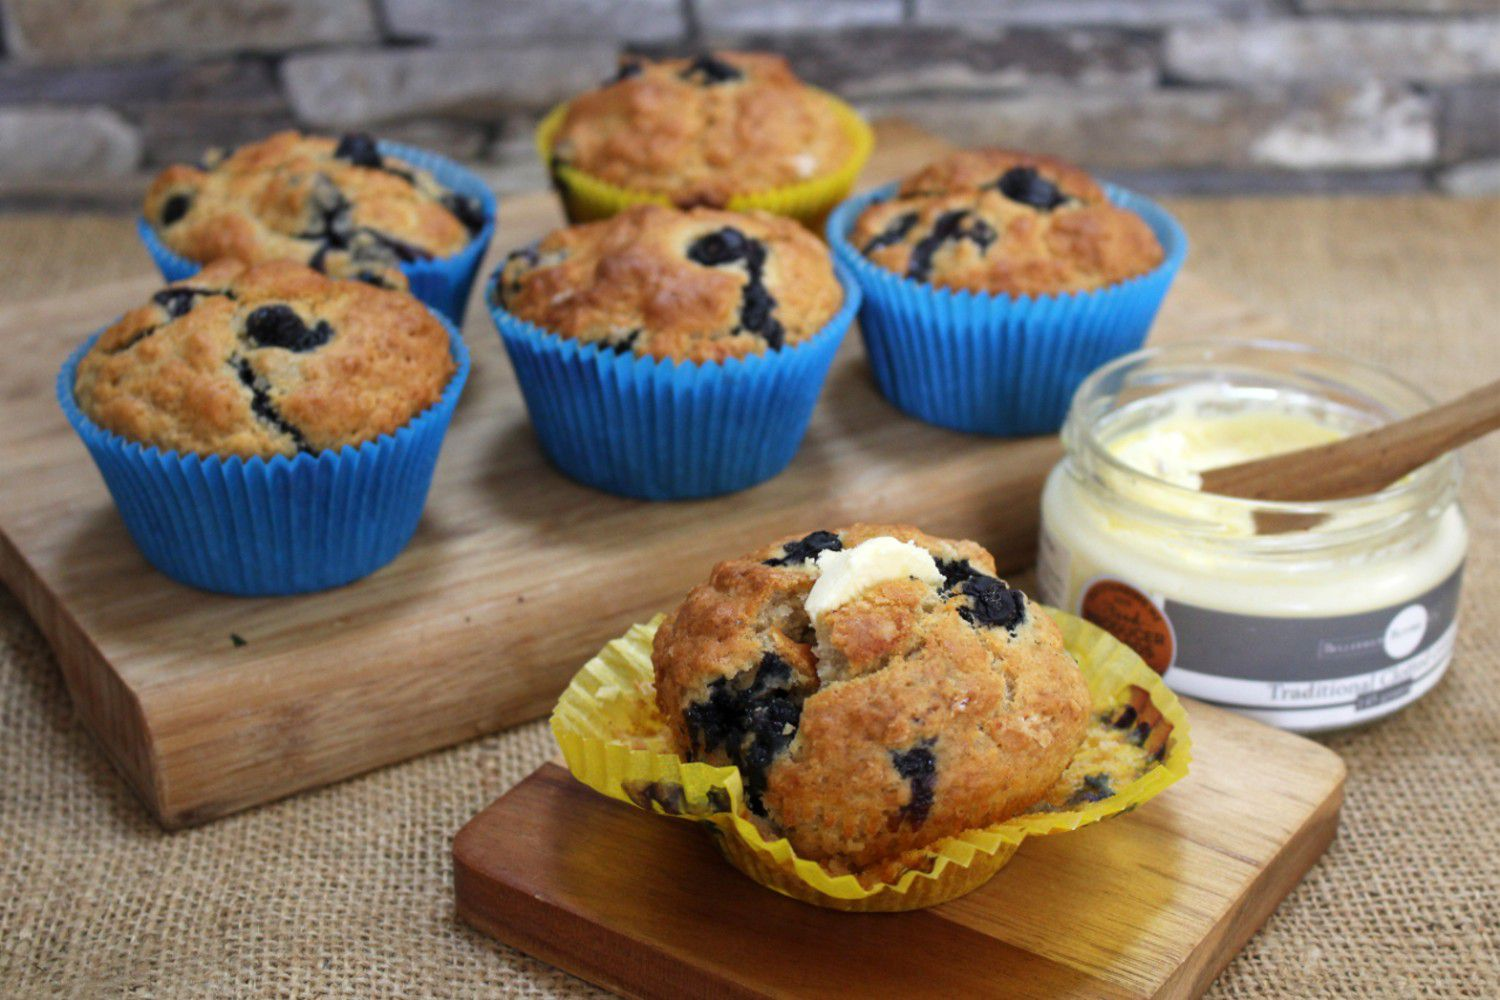 Blueberry And Buttermilk Muffins With Clotted Cream Nz Herald